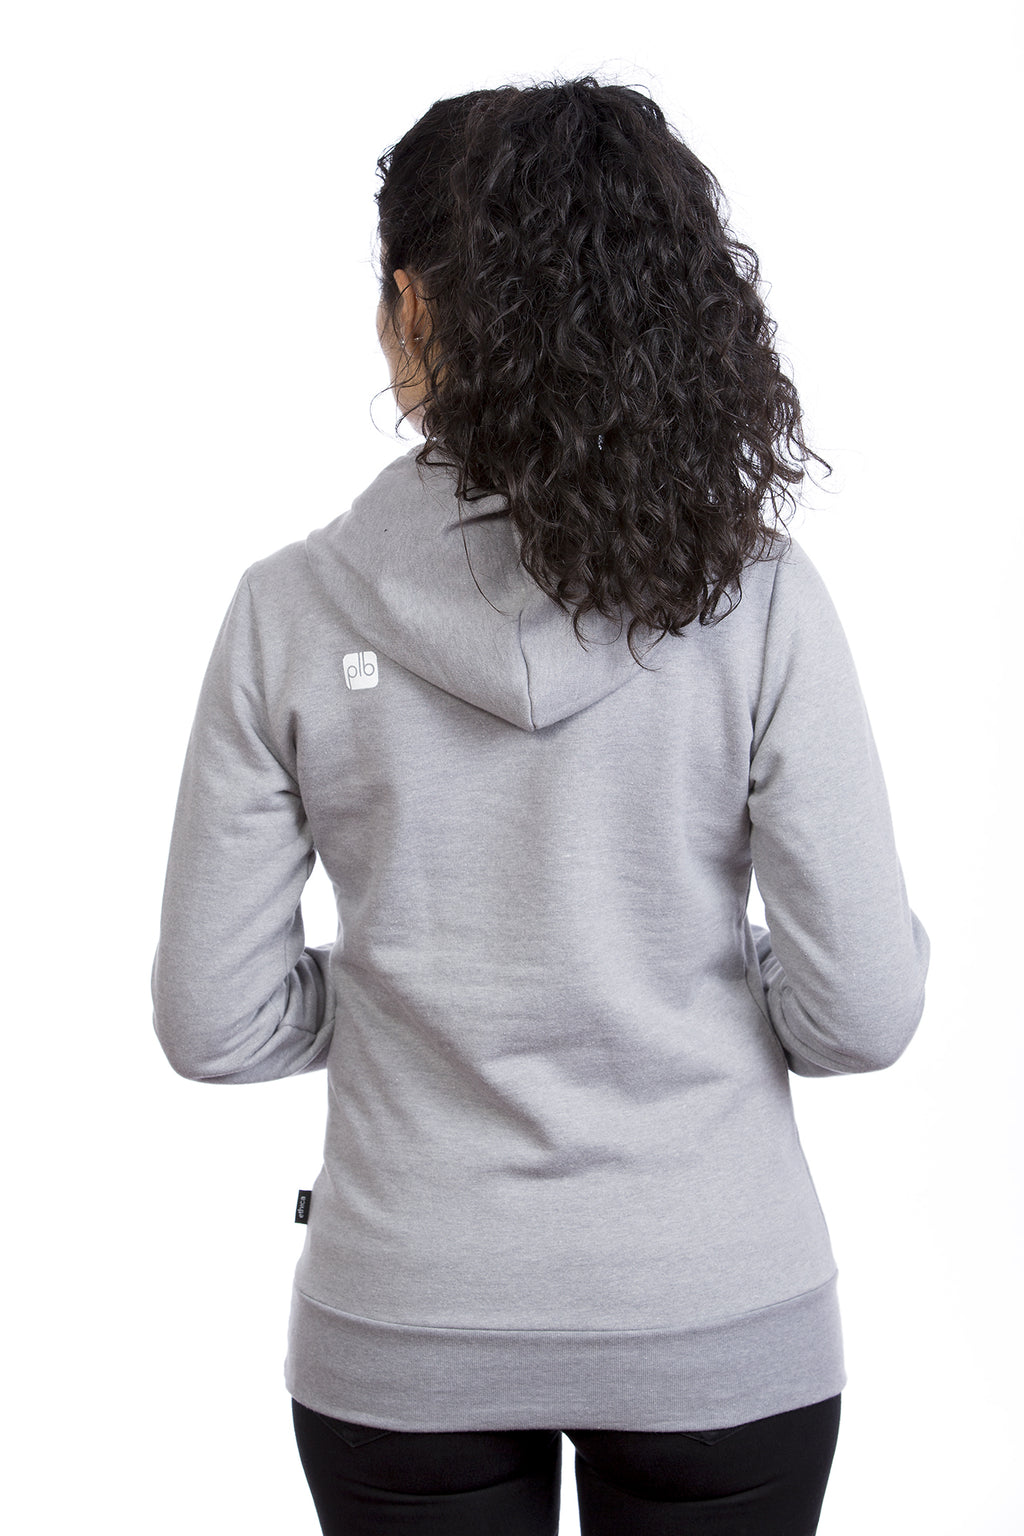 Women's Boreal Forest Hoodie - Organic cotton